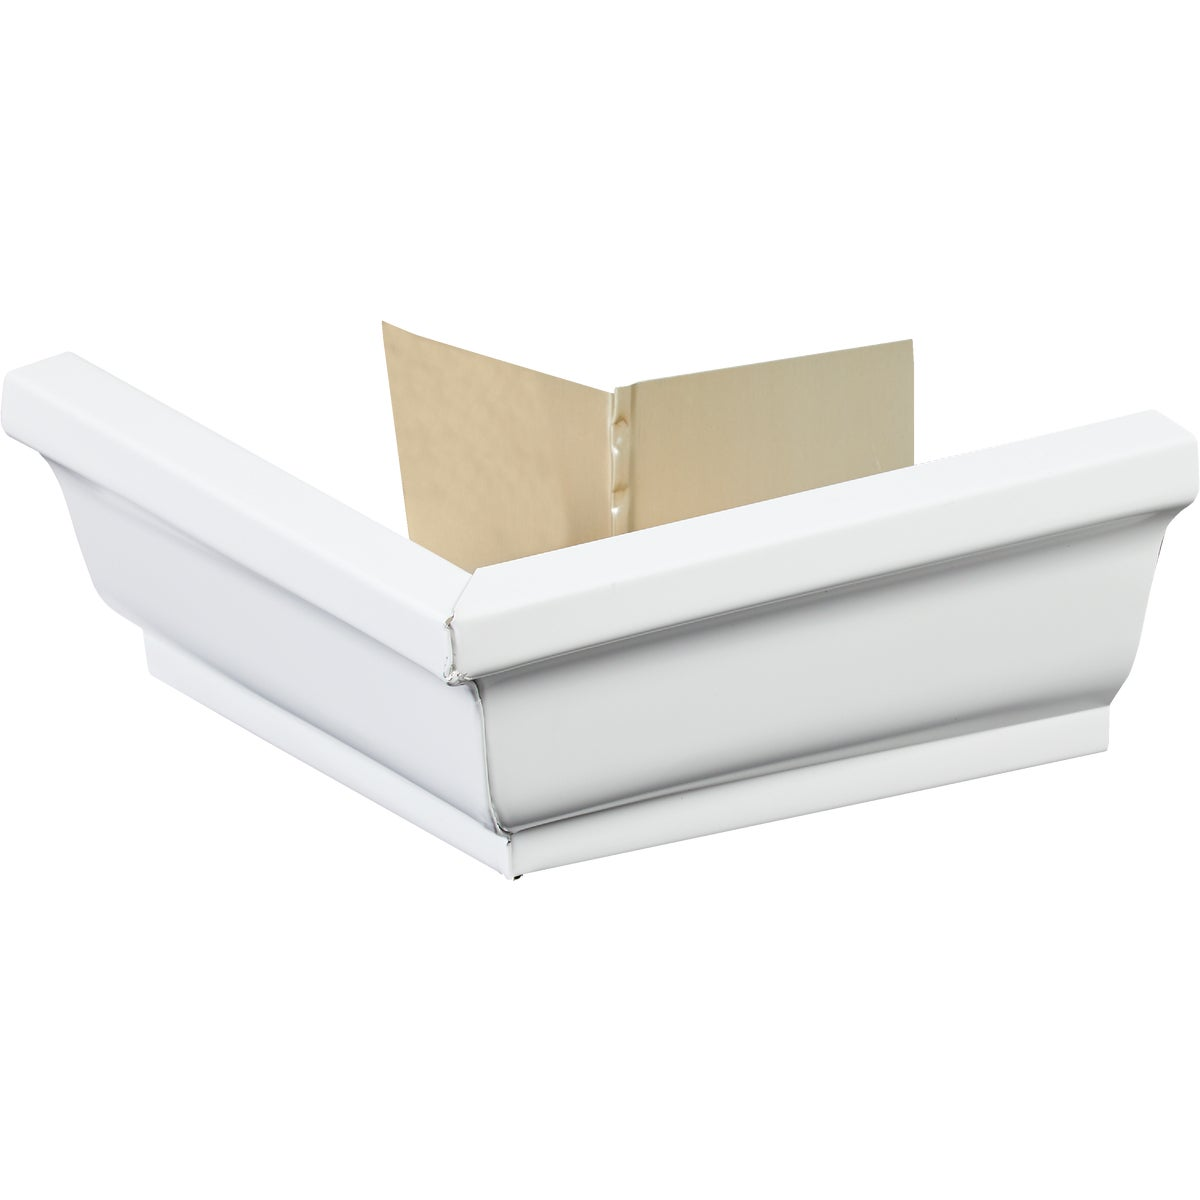 WHITE OUTSIDE MITRE - 27202 by Amerimax Home Prod